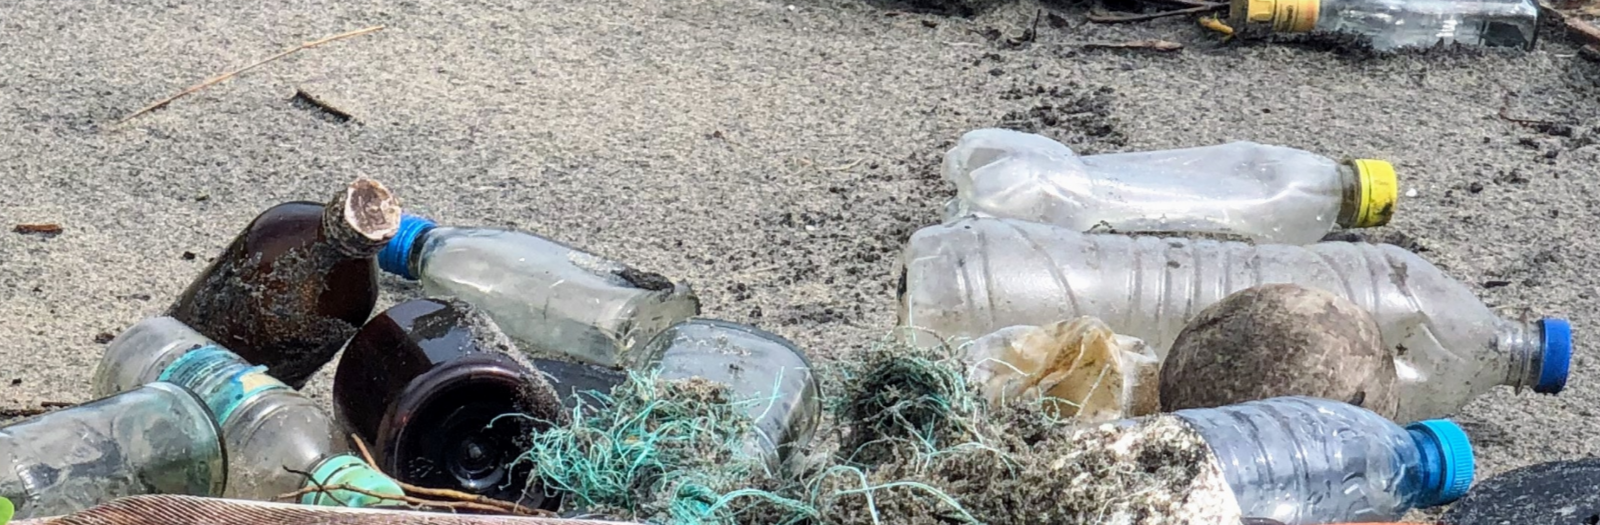 plastic waste on beach